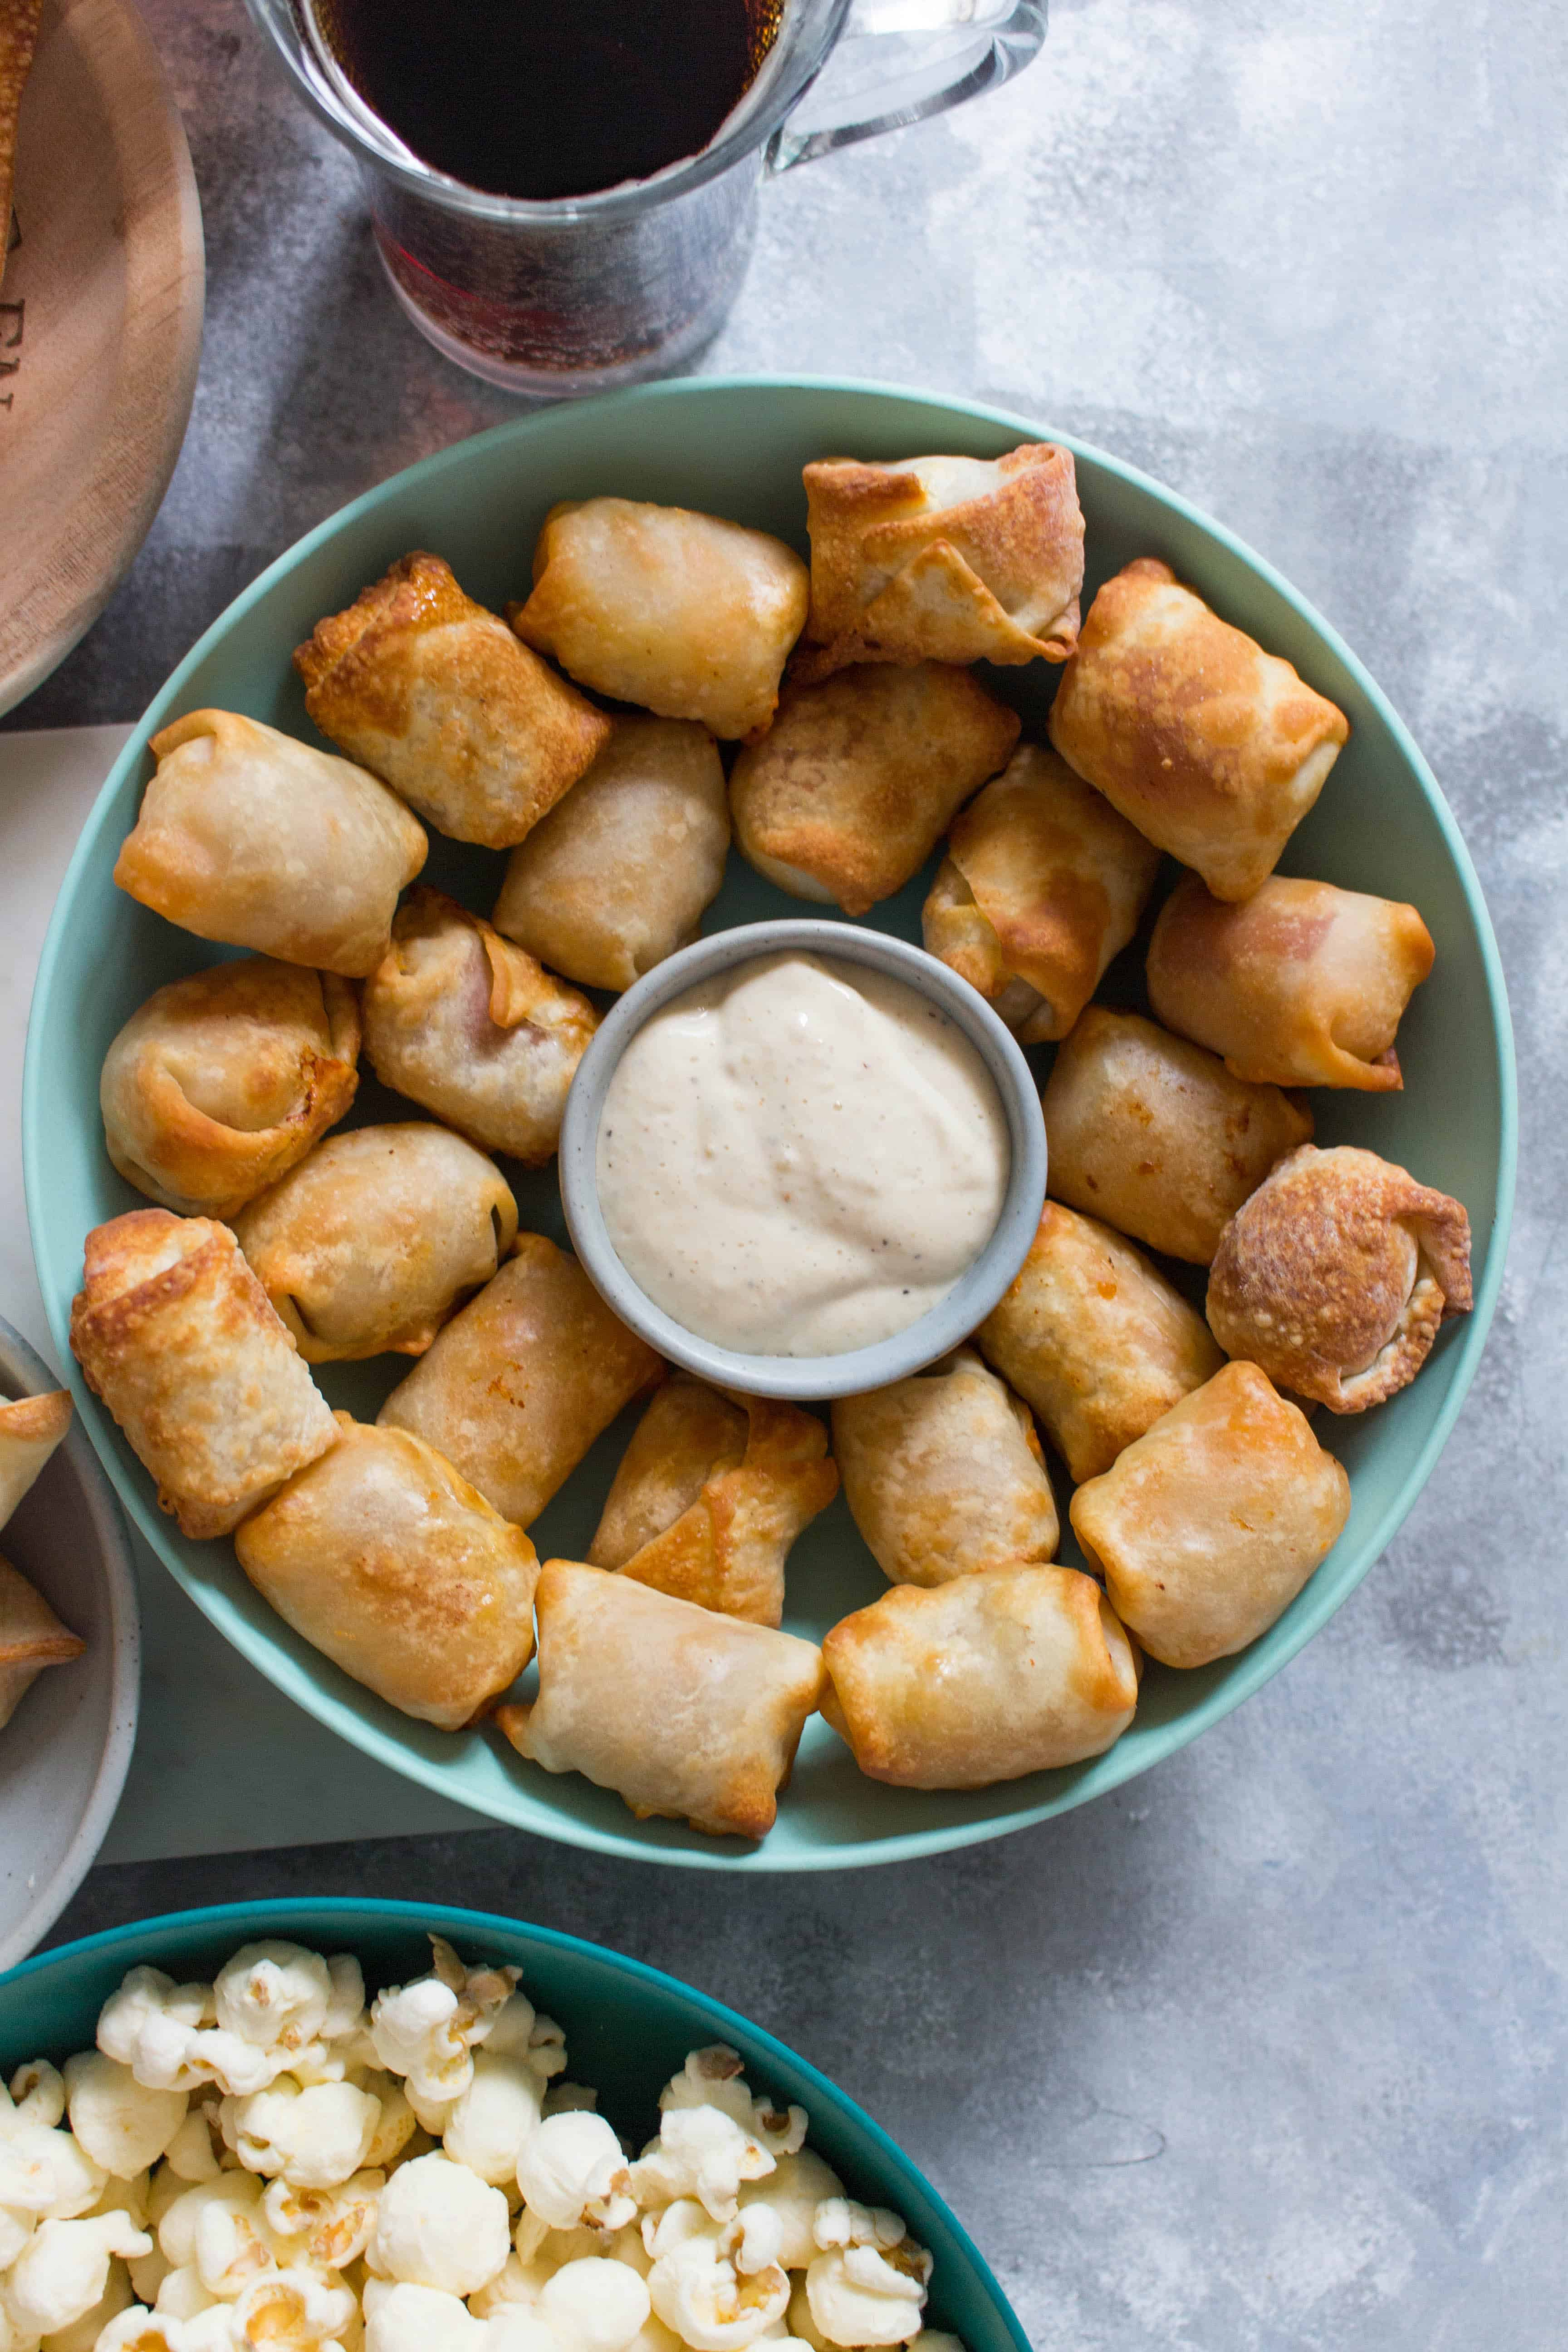 Do you often crave that crunch from deep fried foods while watching the game on TV? Want an healthier alternative that's not carrot sticks? Try these party snacks: wontons 3 ways with an Airfryer! The perfect little bites!